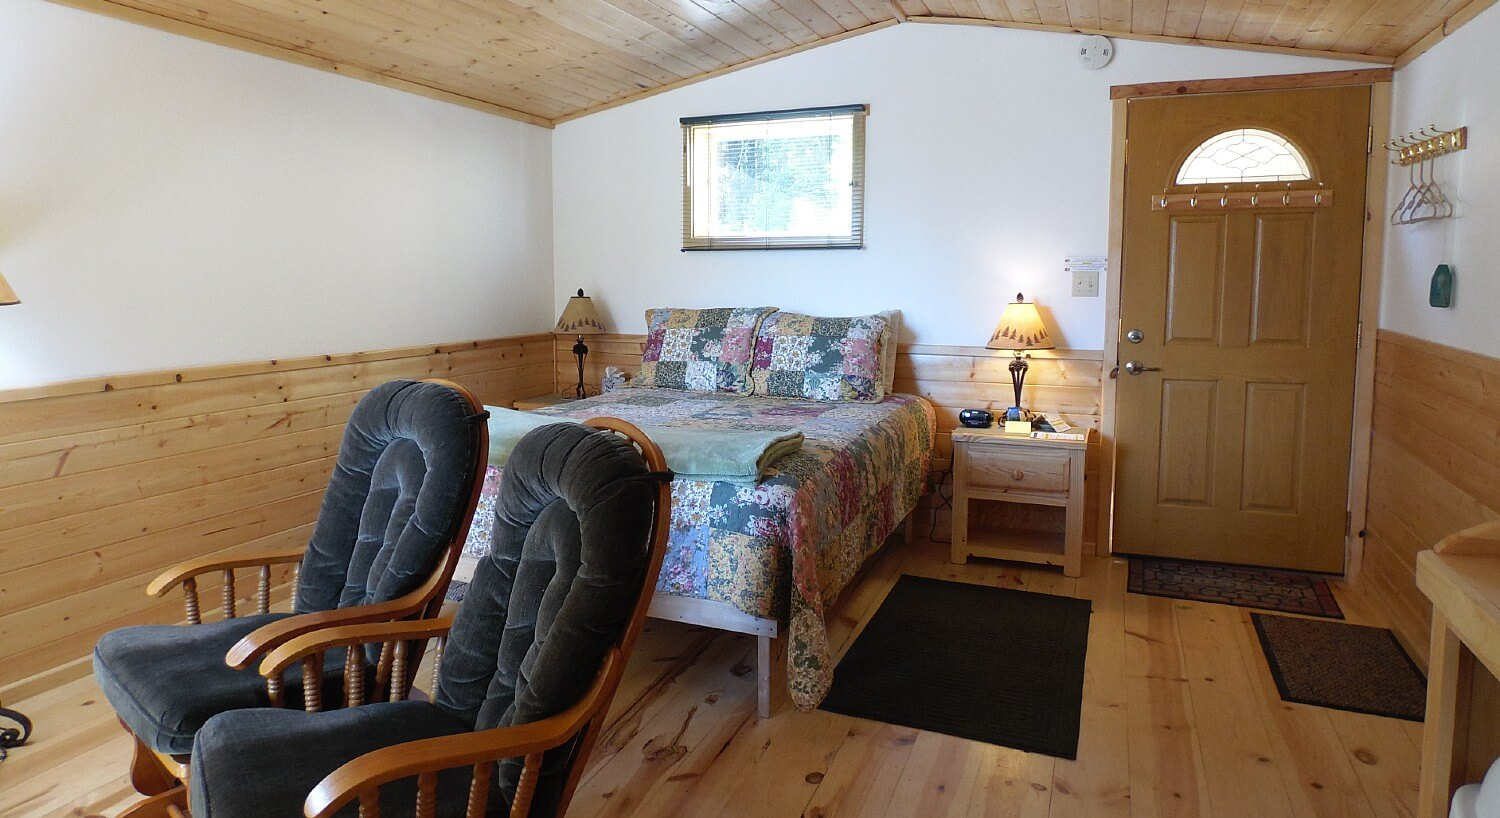 Cozy cabin bedroom featuring queen bed with colorful quilt, bed stands with lamps and two grey plush sitting chairs